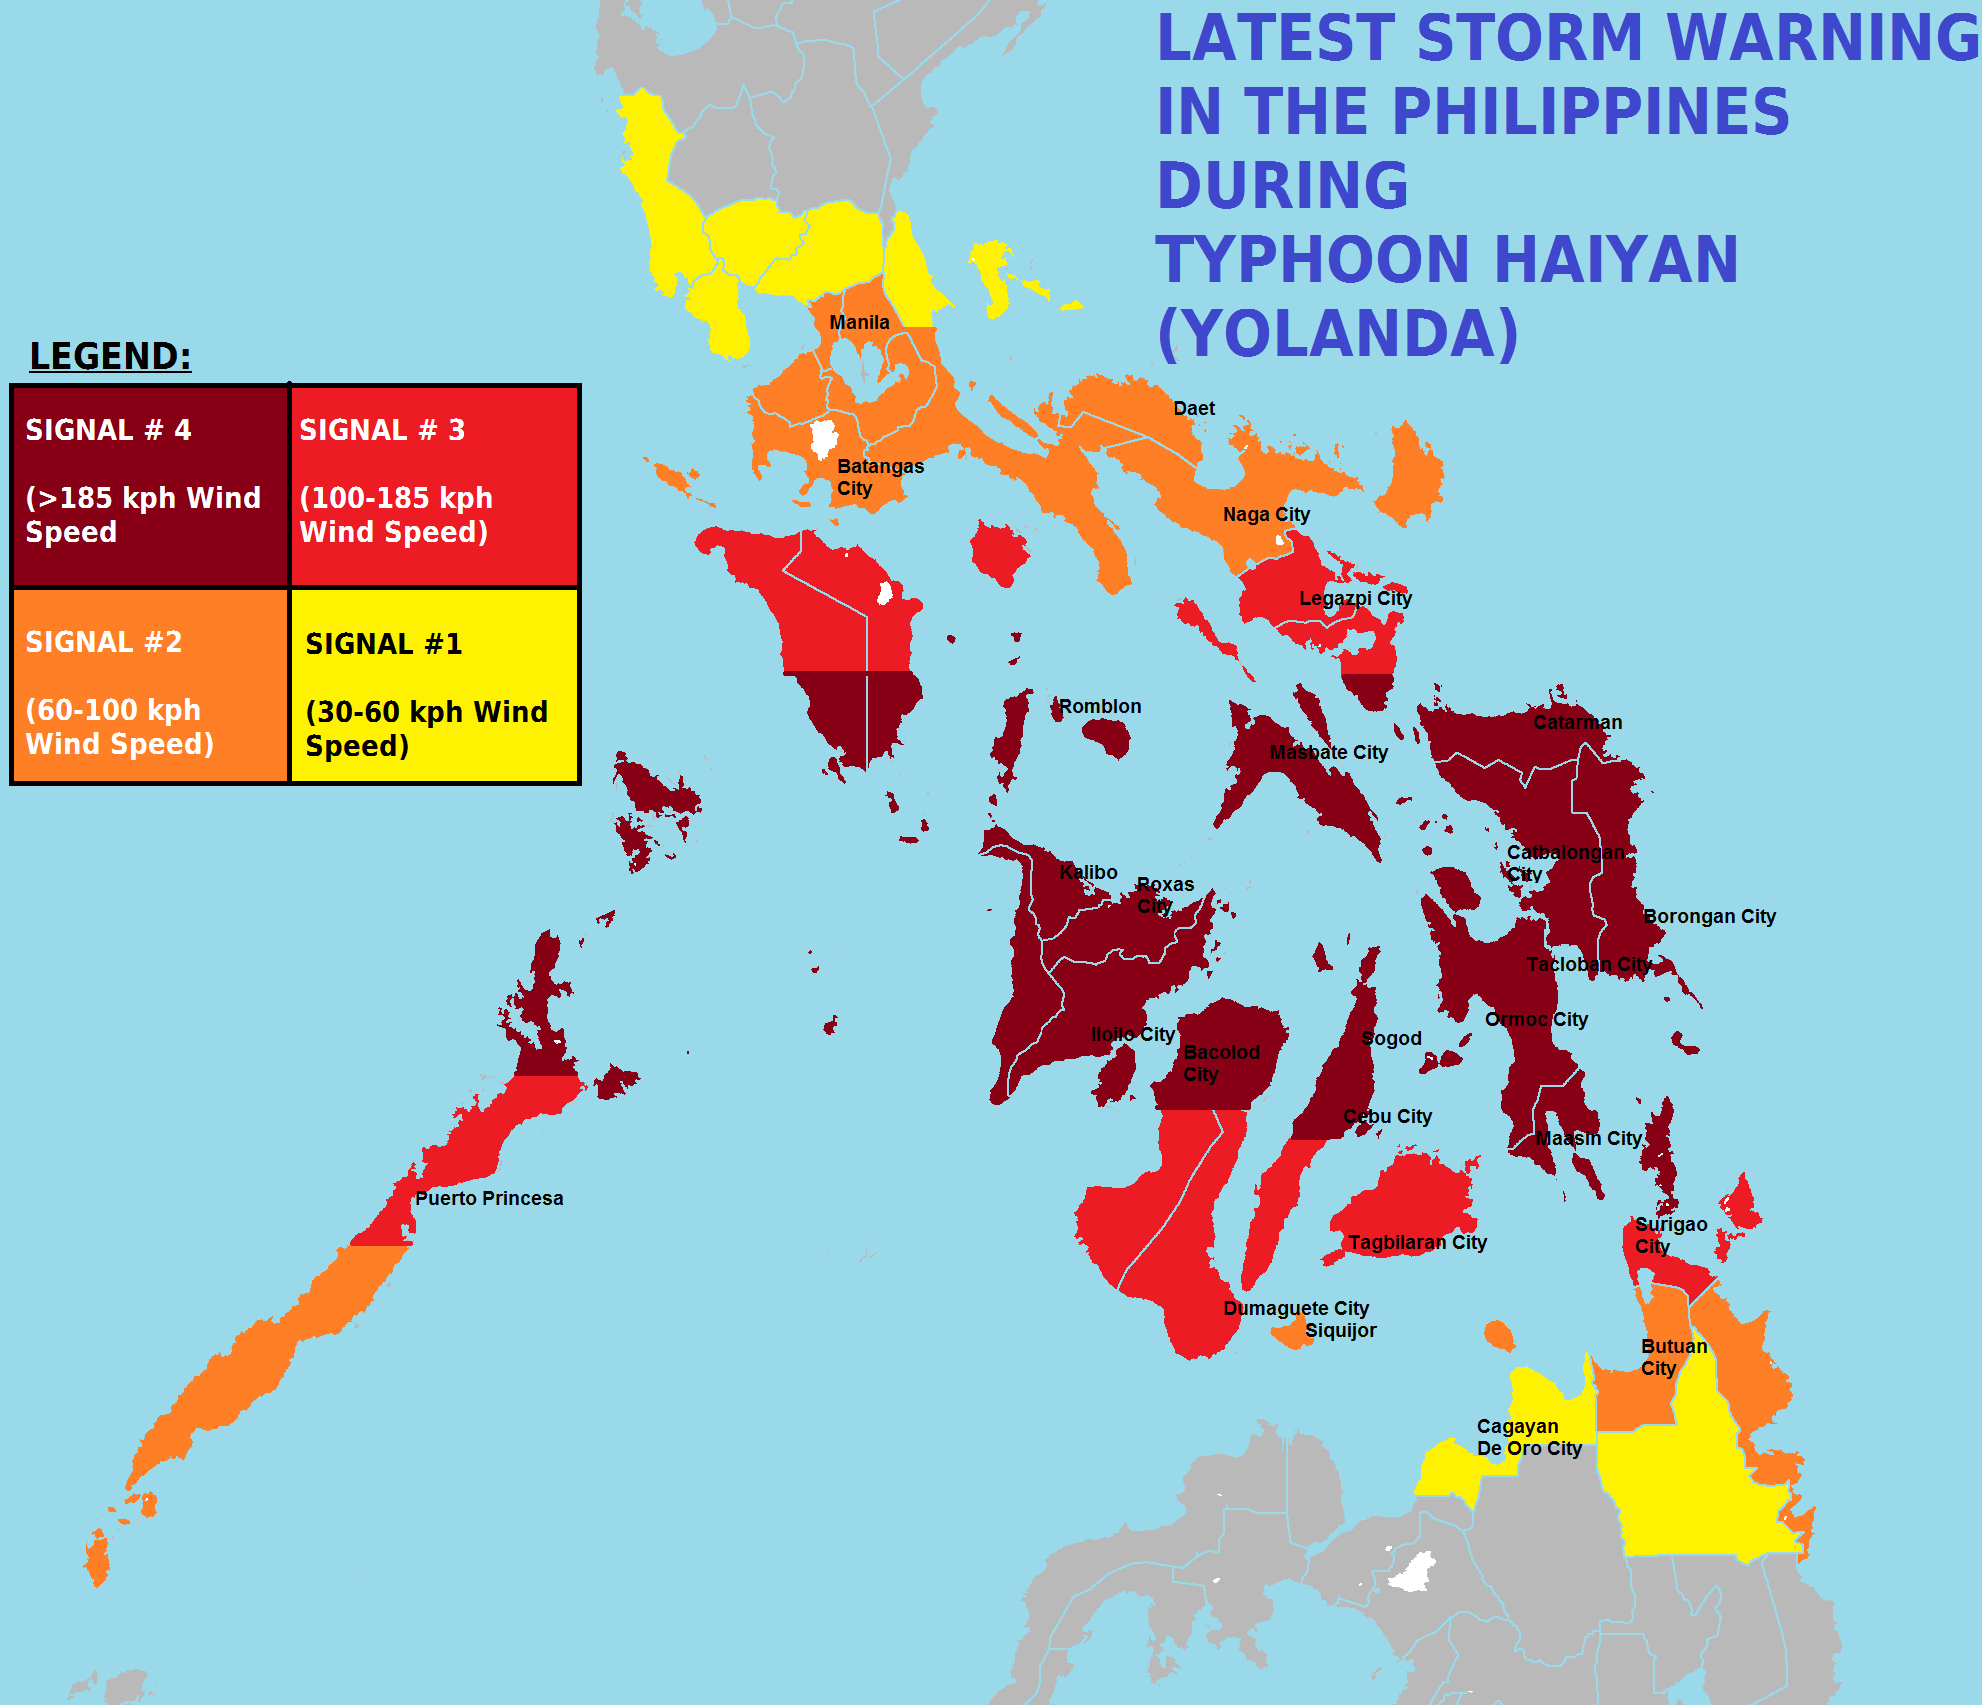 PSWS Map in the Philippines during the passage of Typhoon Haiyan (Yolanda).